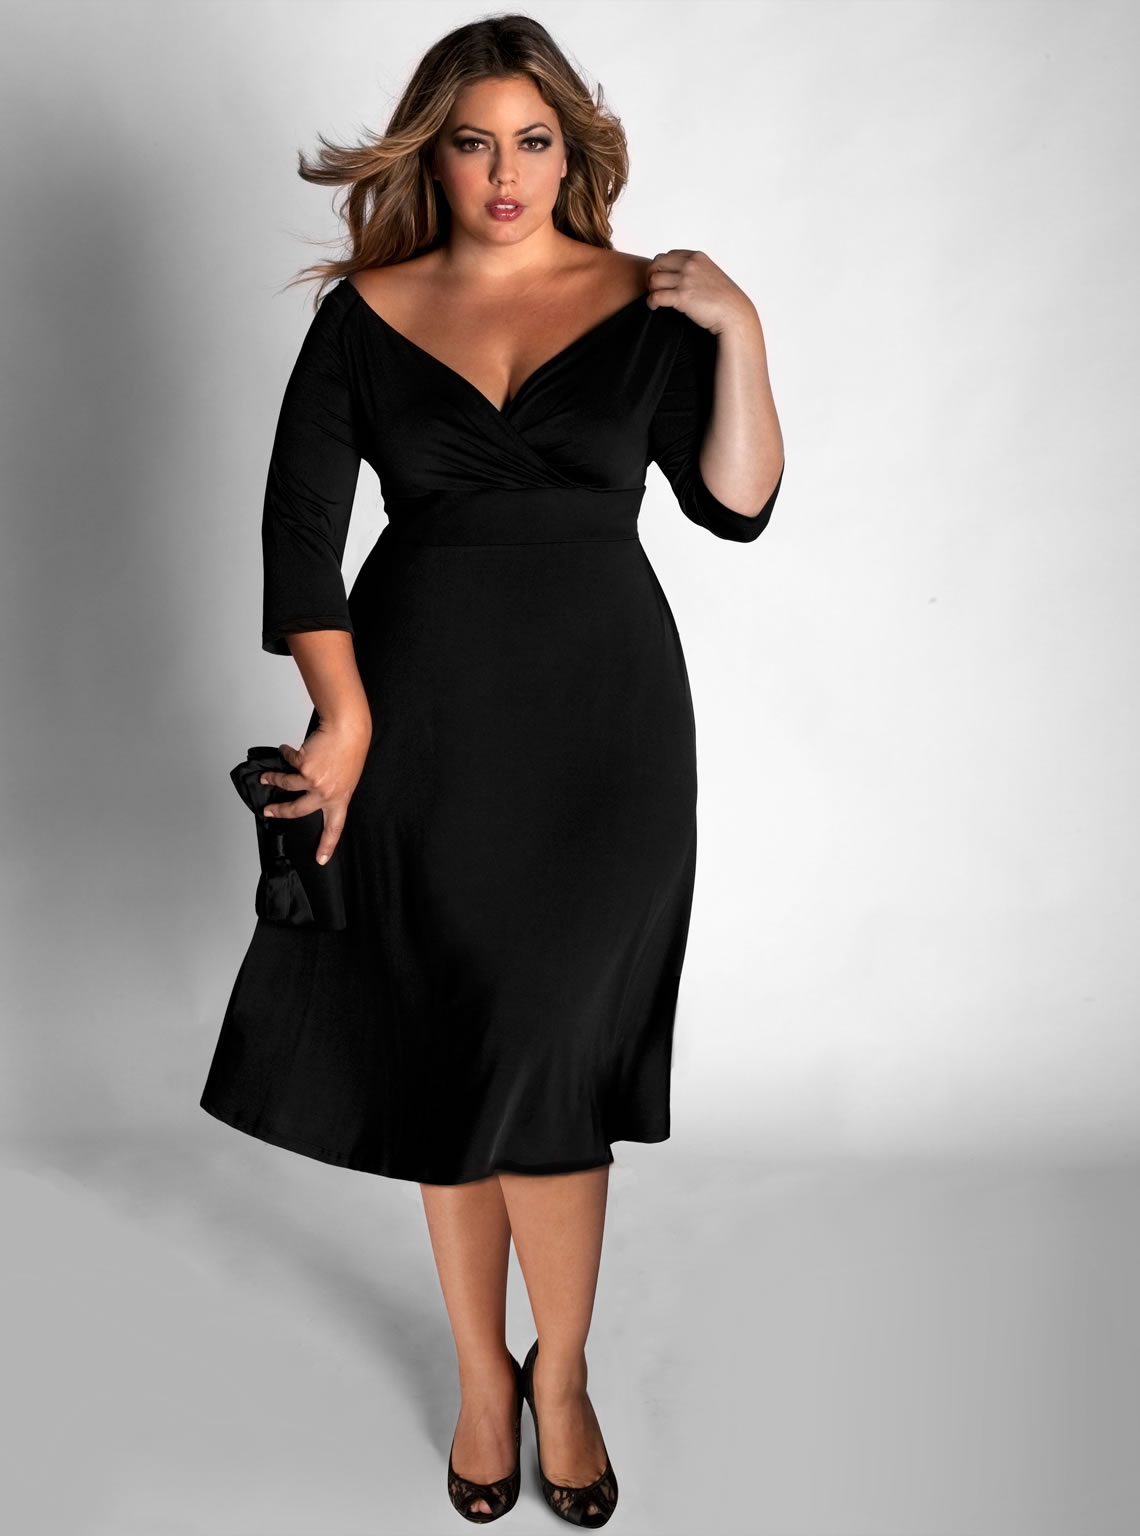 Little Black Dress Cheap Little Black Dress Size 14 2014 2015 Fashion